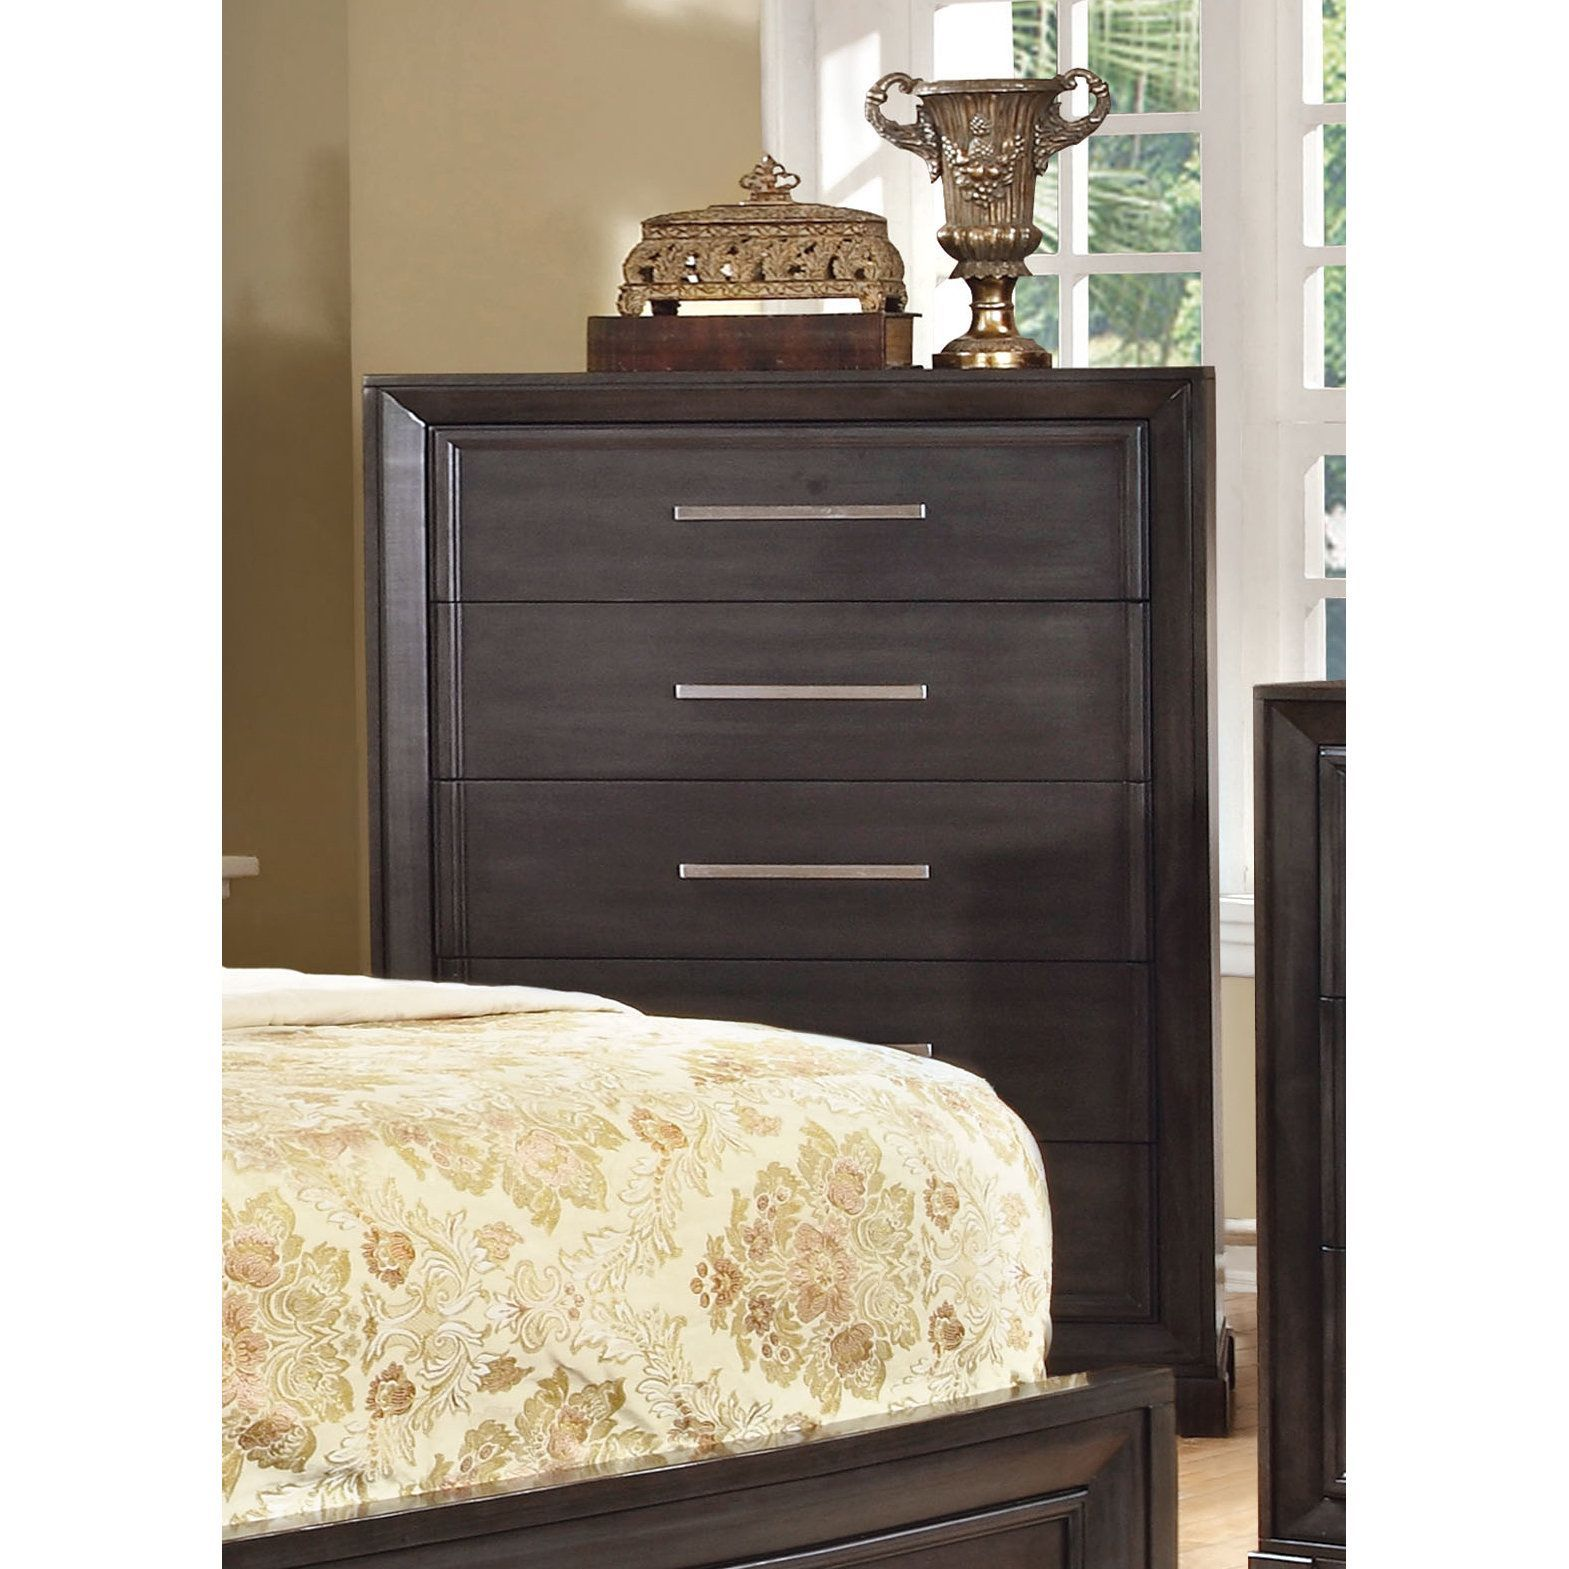 furniture of america stoneward dark grey 5 drawer chest dark grey rh pinterest co uk